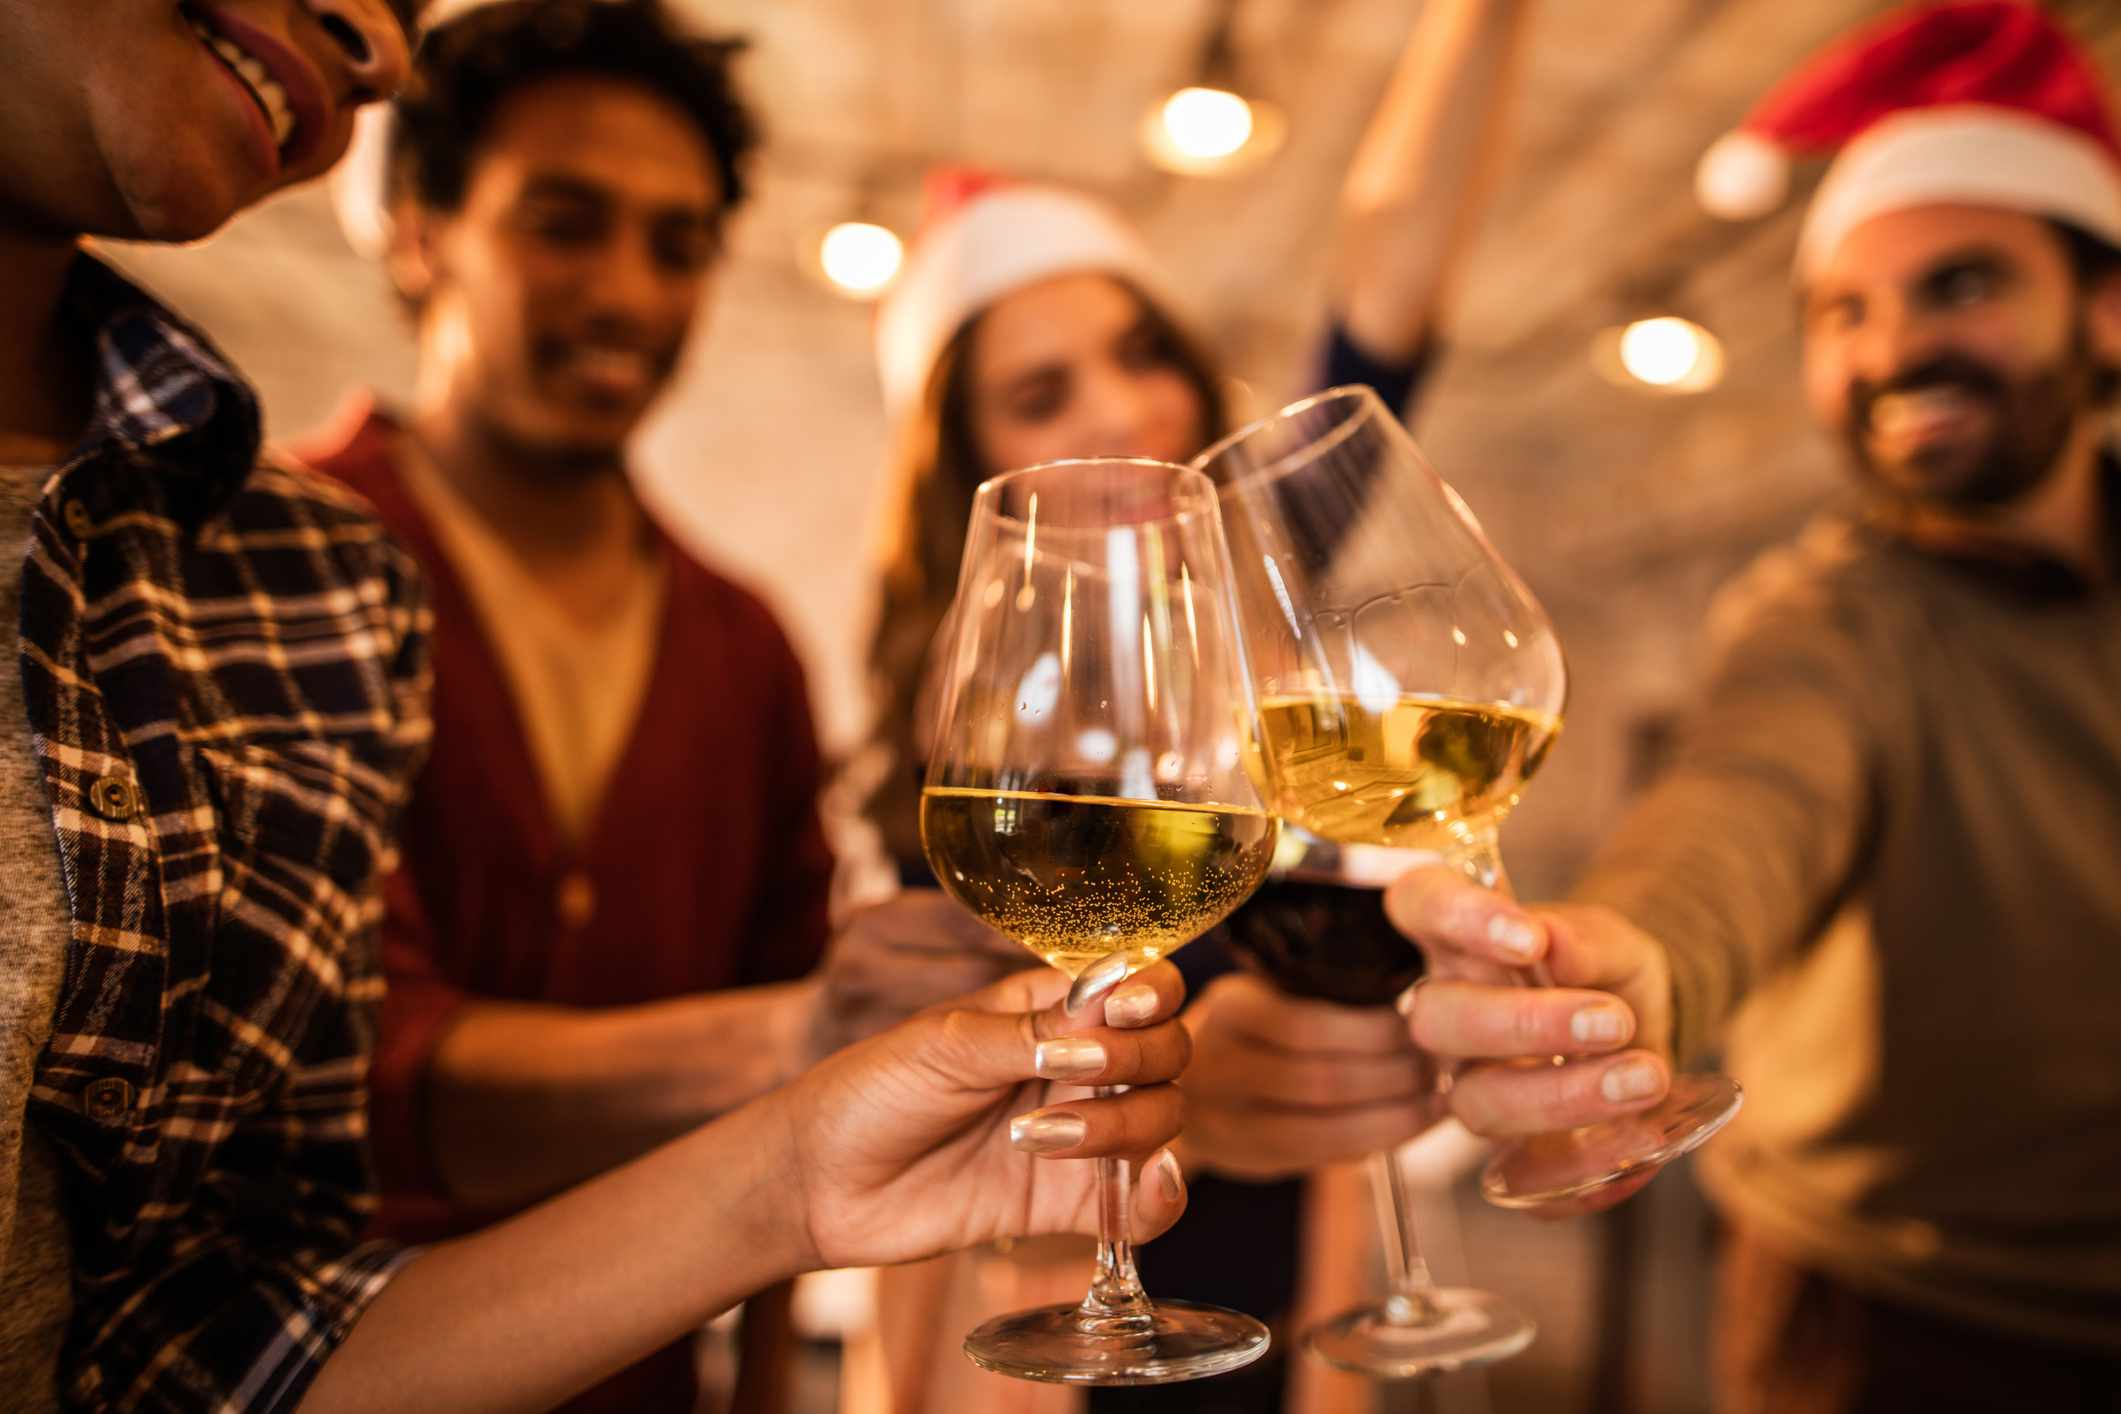 Staff toasting with wine at a holiday party